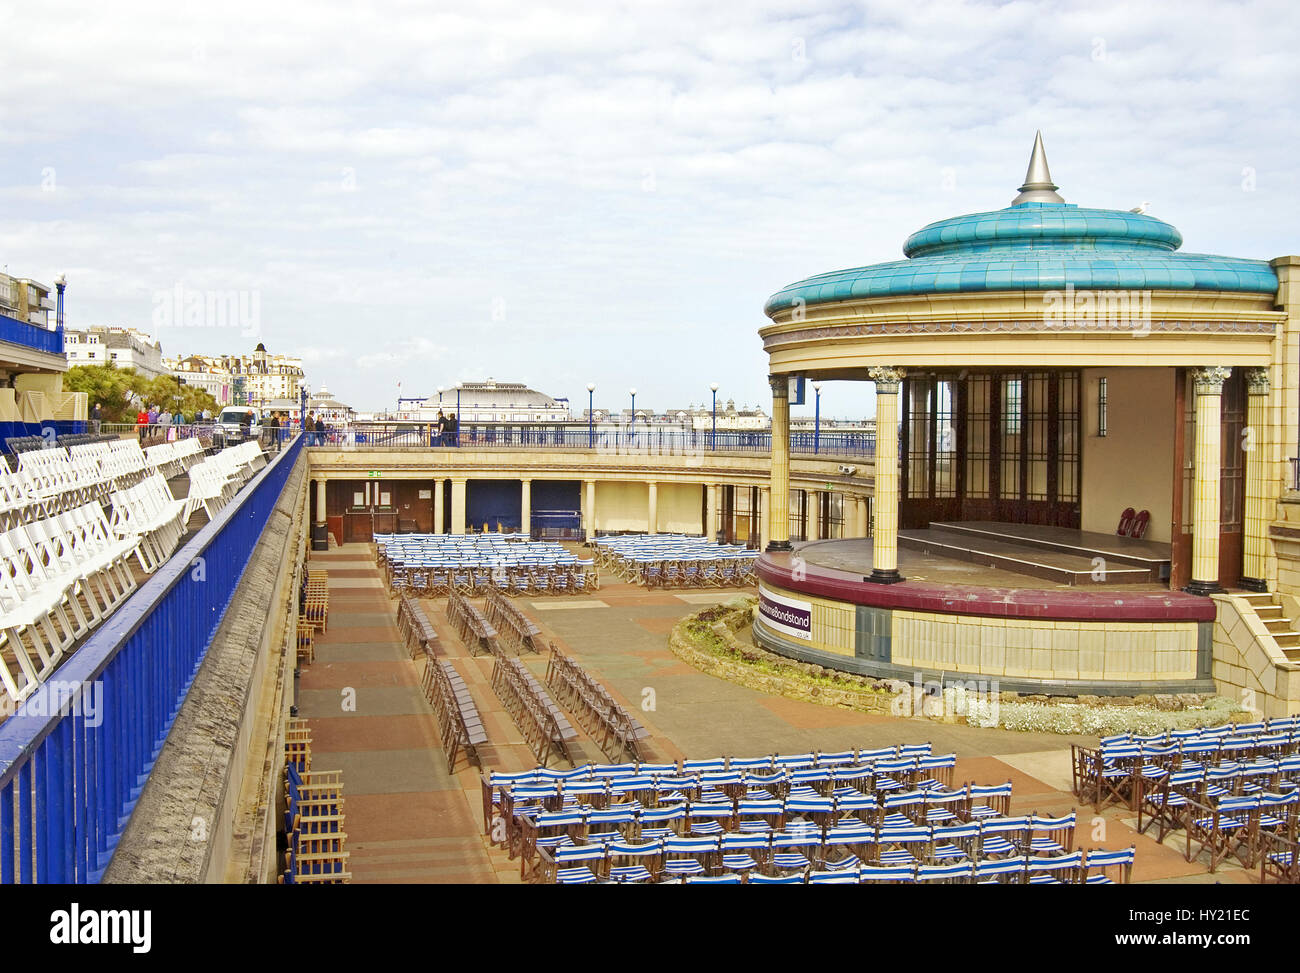 The Bandstand at the popular beachside resort of Eastbourne in East Sussex, South England. Stock Photo